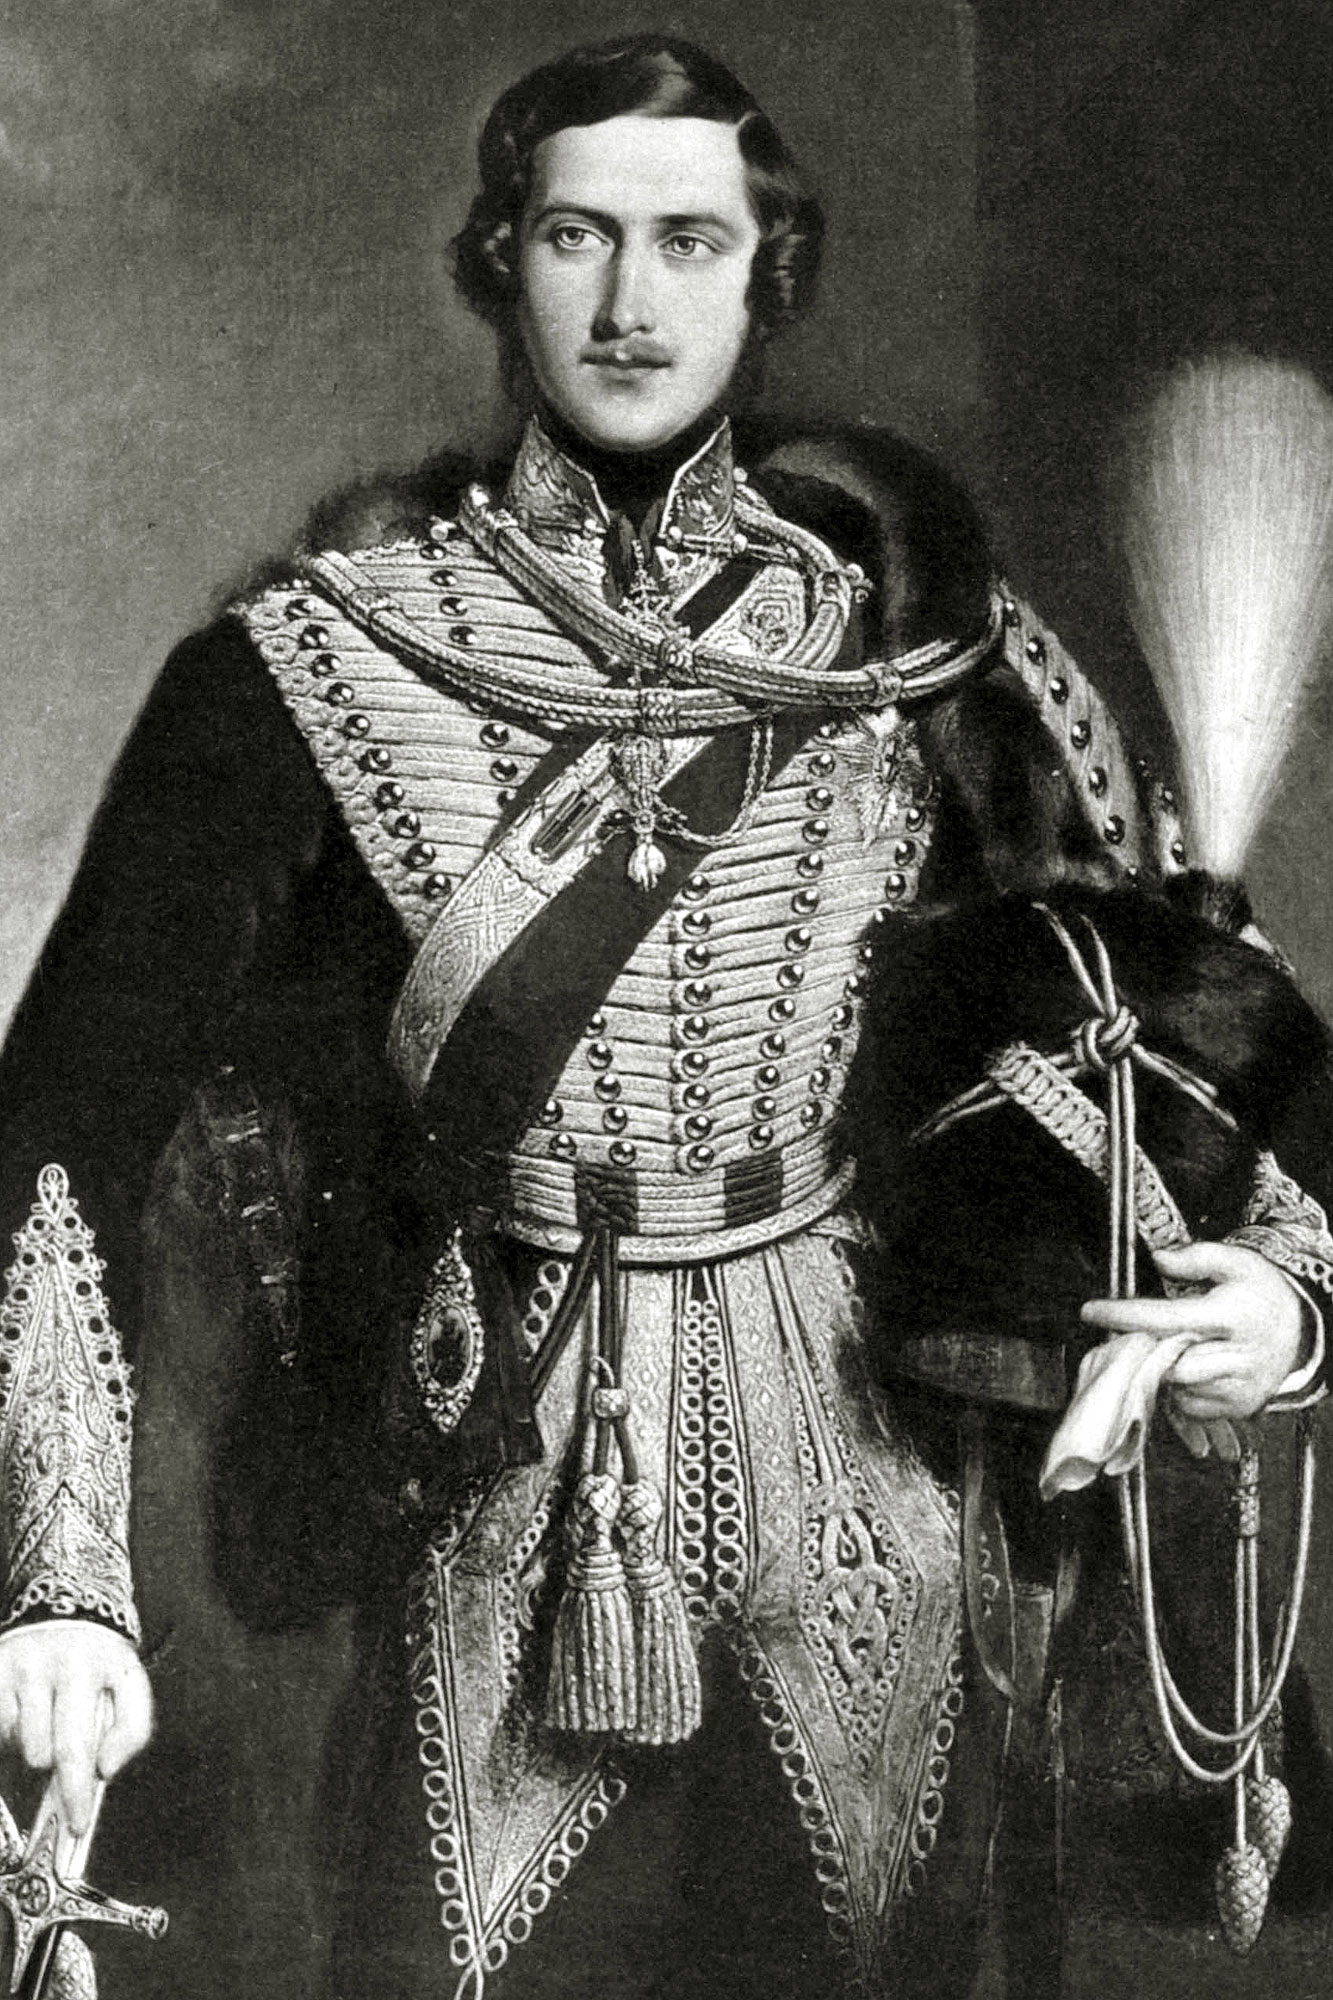 History Personalities, British Royalty, pic: circa 1840's, Prince Albert, (1819-1861) portrait, pictured in uniform, Prince Albert, a Prince of Saxe Coburg Gotha, married Queen Victoria in 1840 and later was given the title Prince Consort